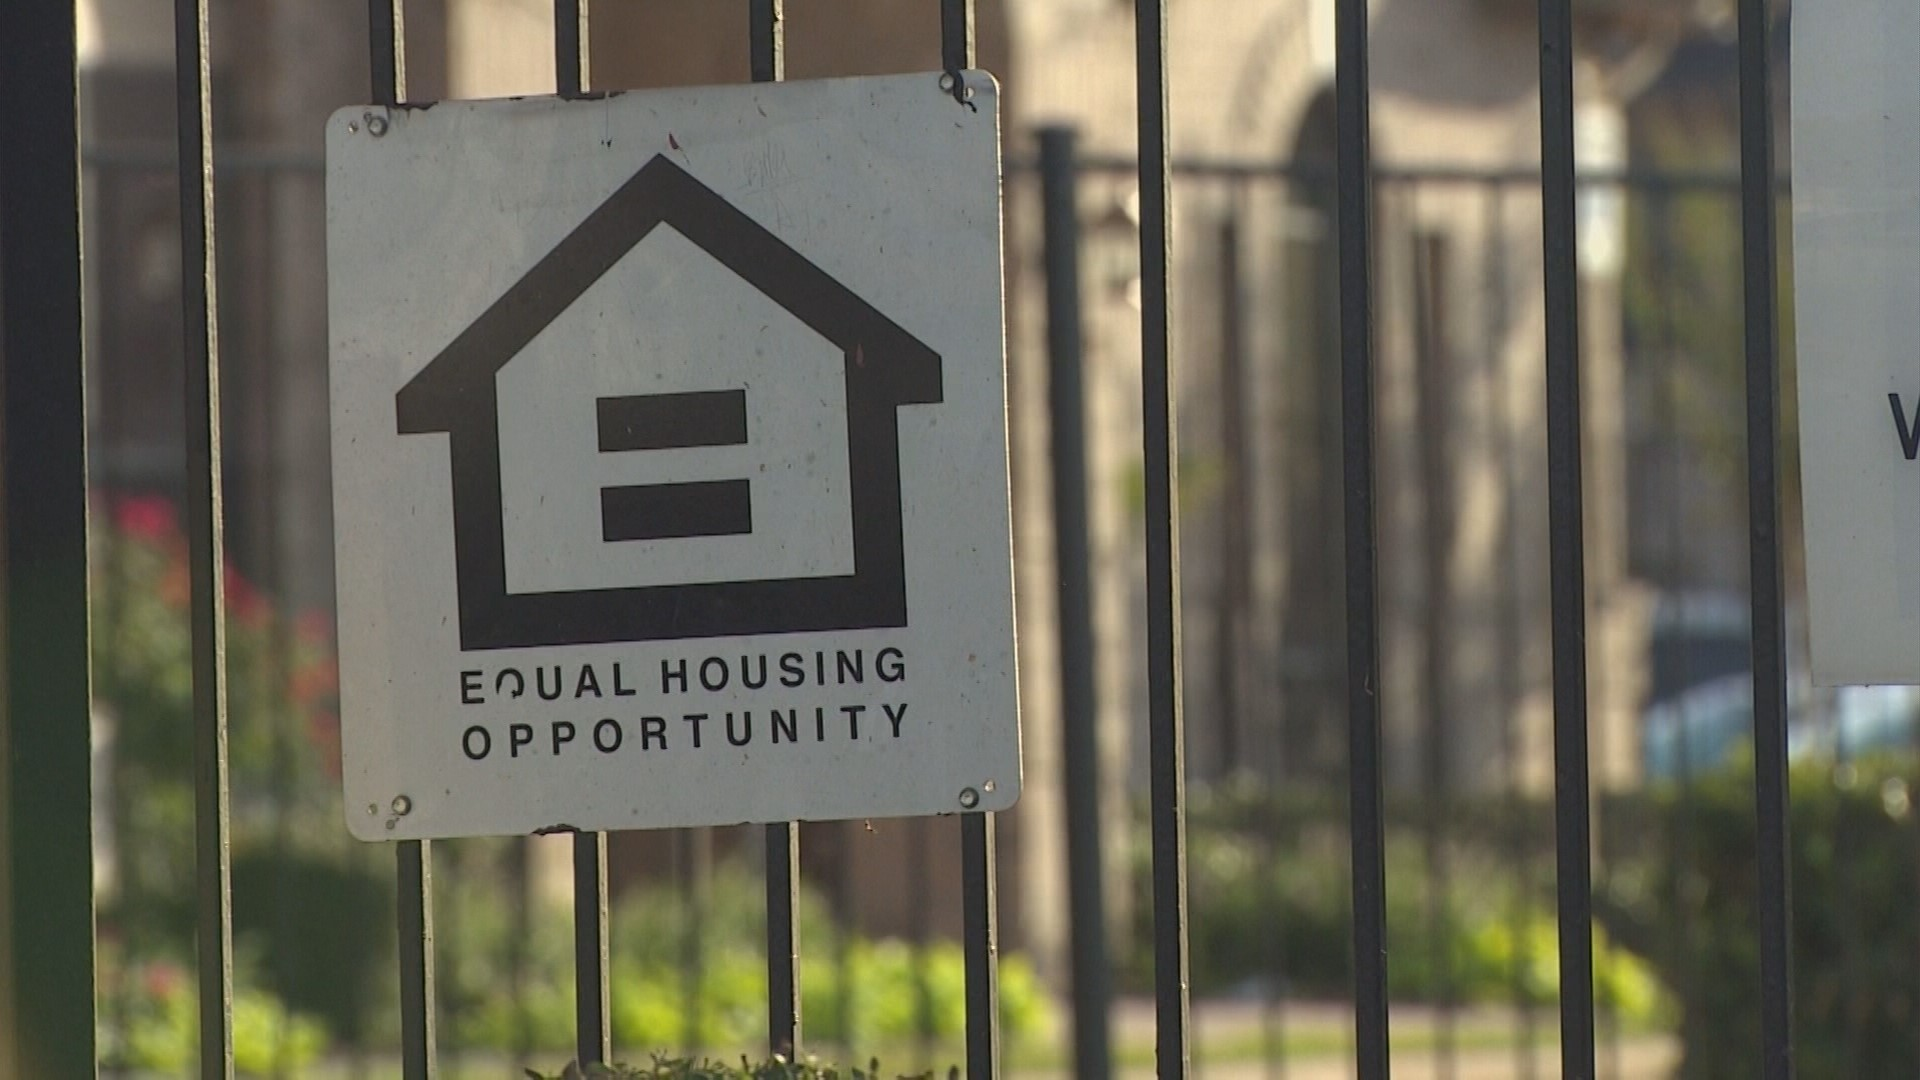 section 8 waitlist application opens monday | khou